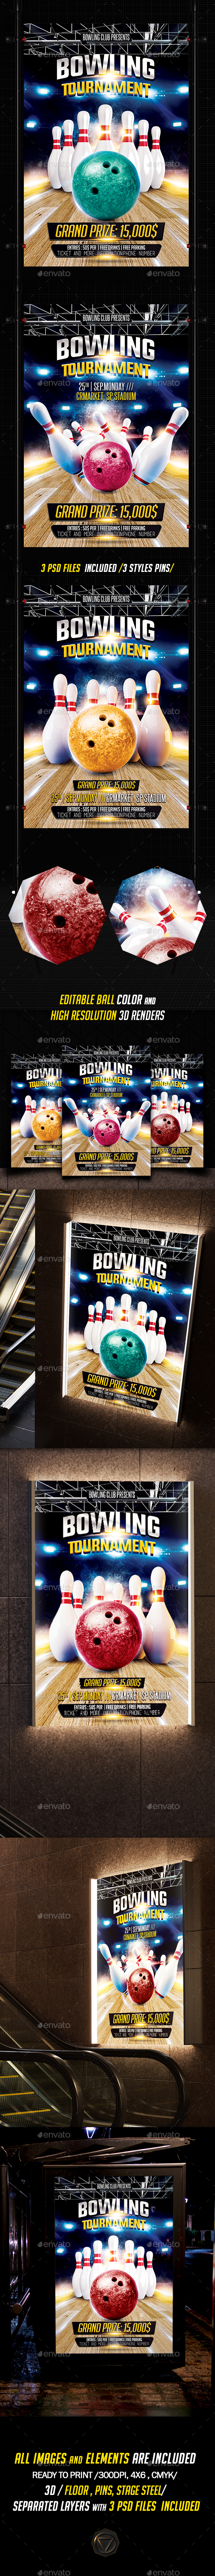 Bowling Flyer  Psd Template Bowling Party Sport Flyer Bowling